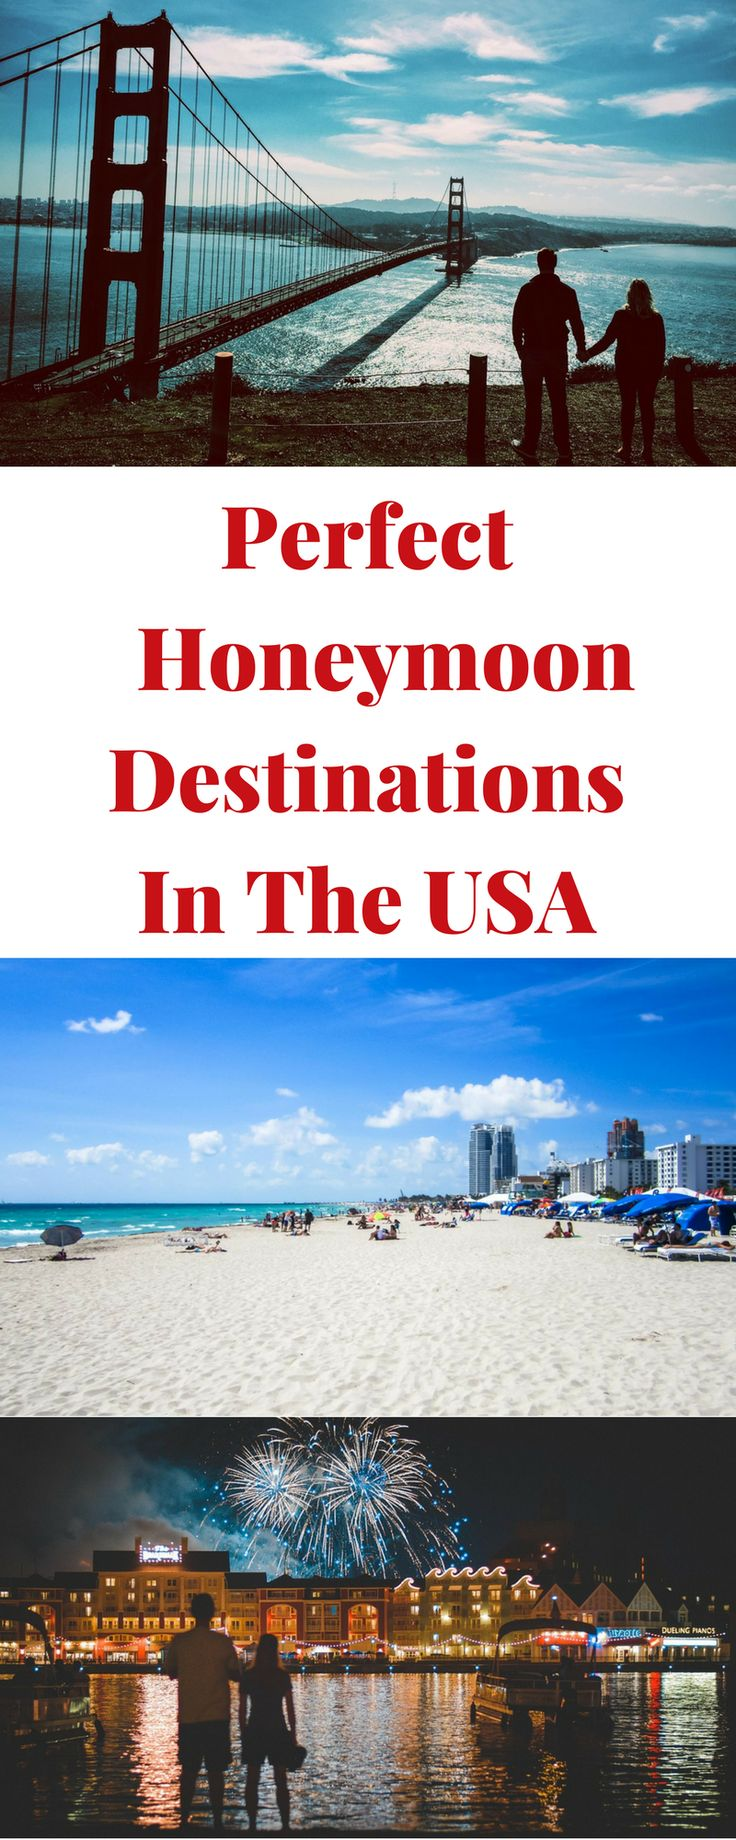 The USA is full of amazing place for a honeymoon, no need for a passport!  Check out our list of recommended destinations in the US that are perfect for a honeymoon from our experience and from top bloggers and travel agents.